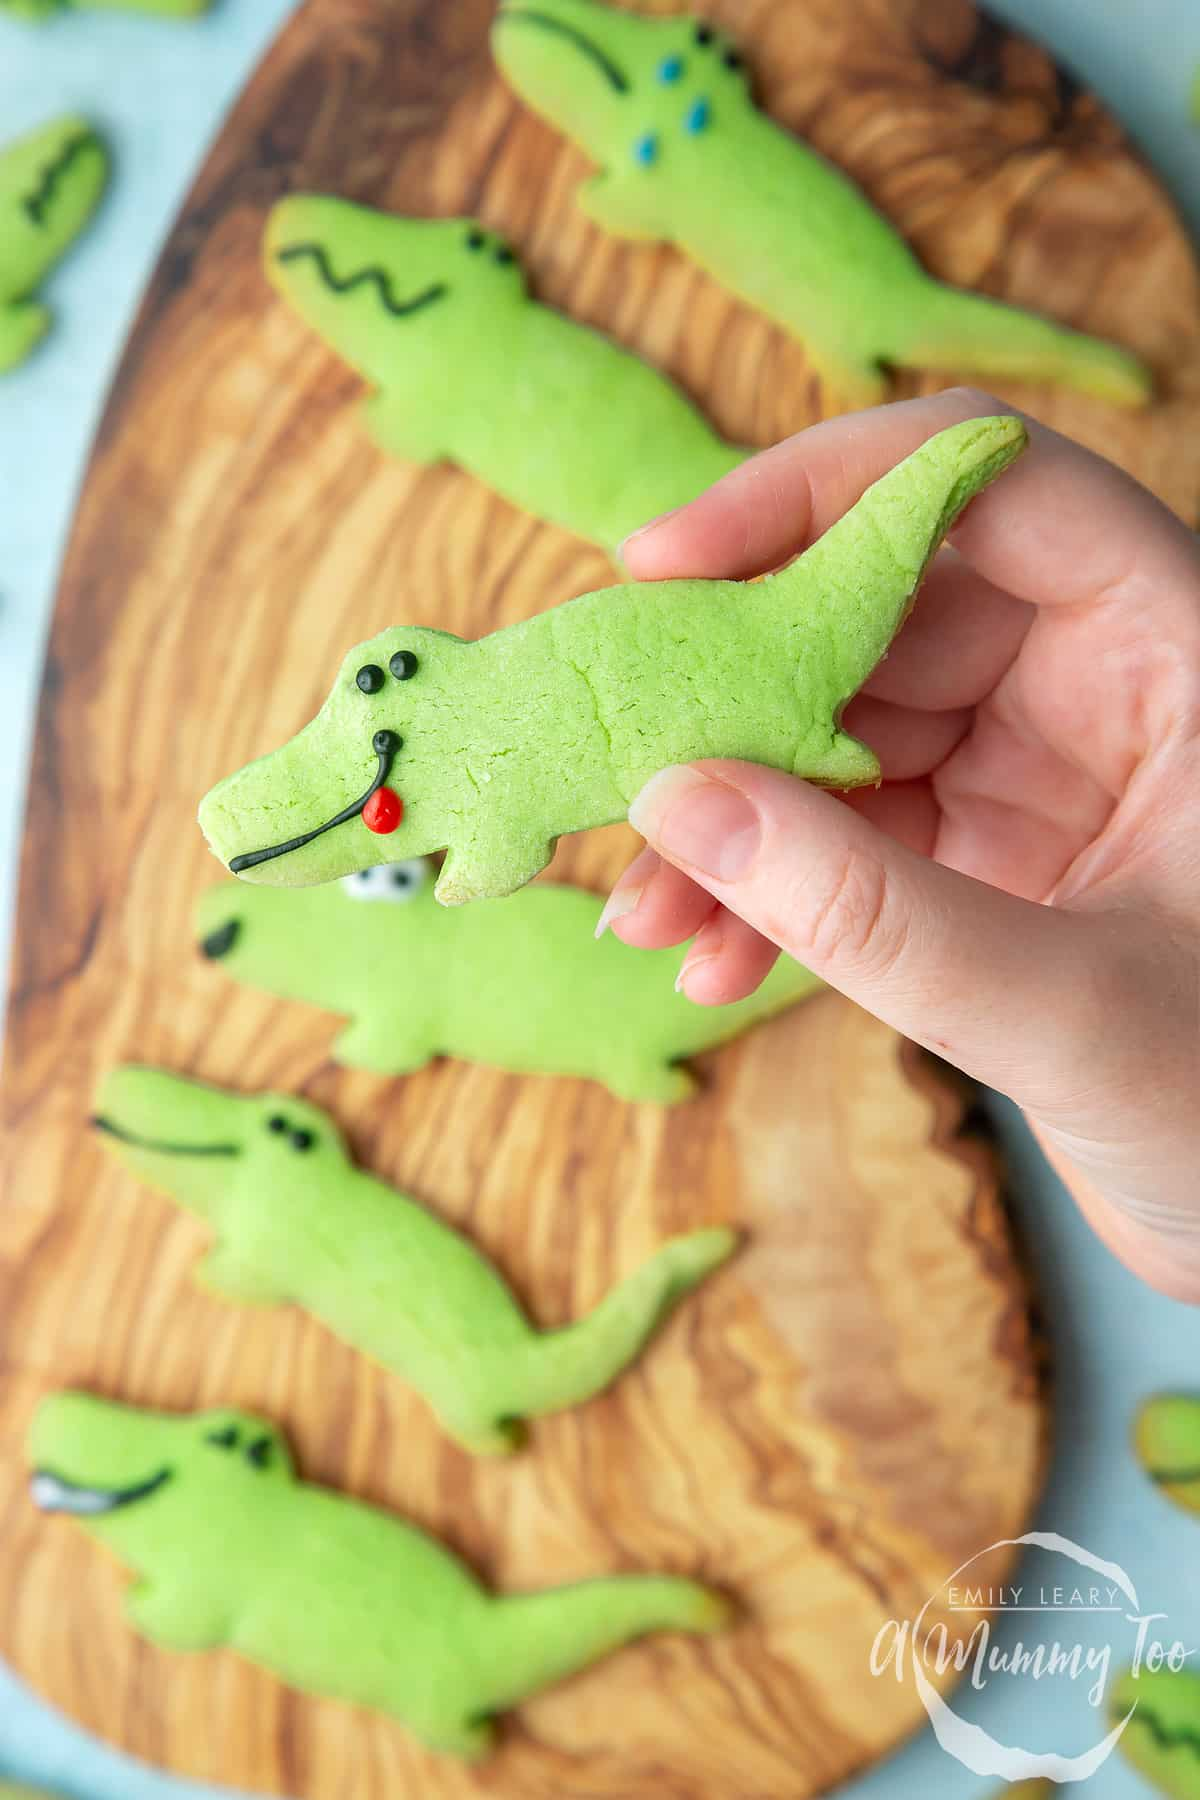 Overhead shot of a hand holding a Crocodile cookie with a mummy too logo in the lower-right corner